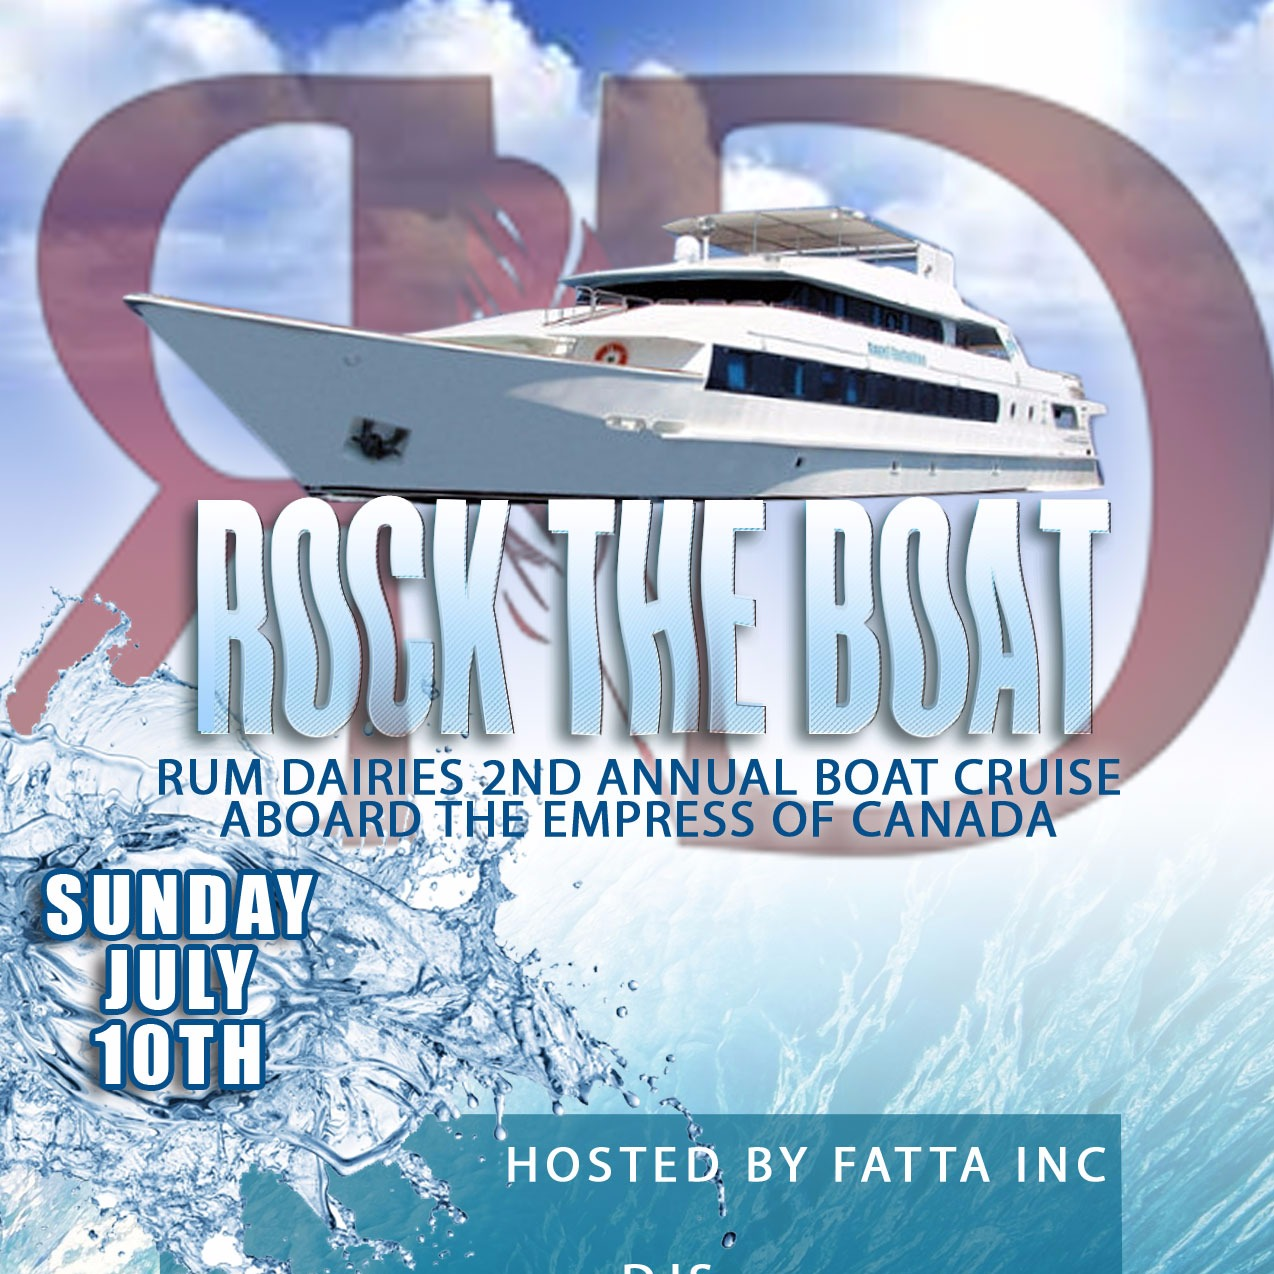 ROCK THE BOAT 2016